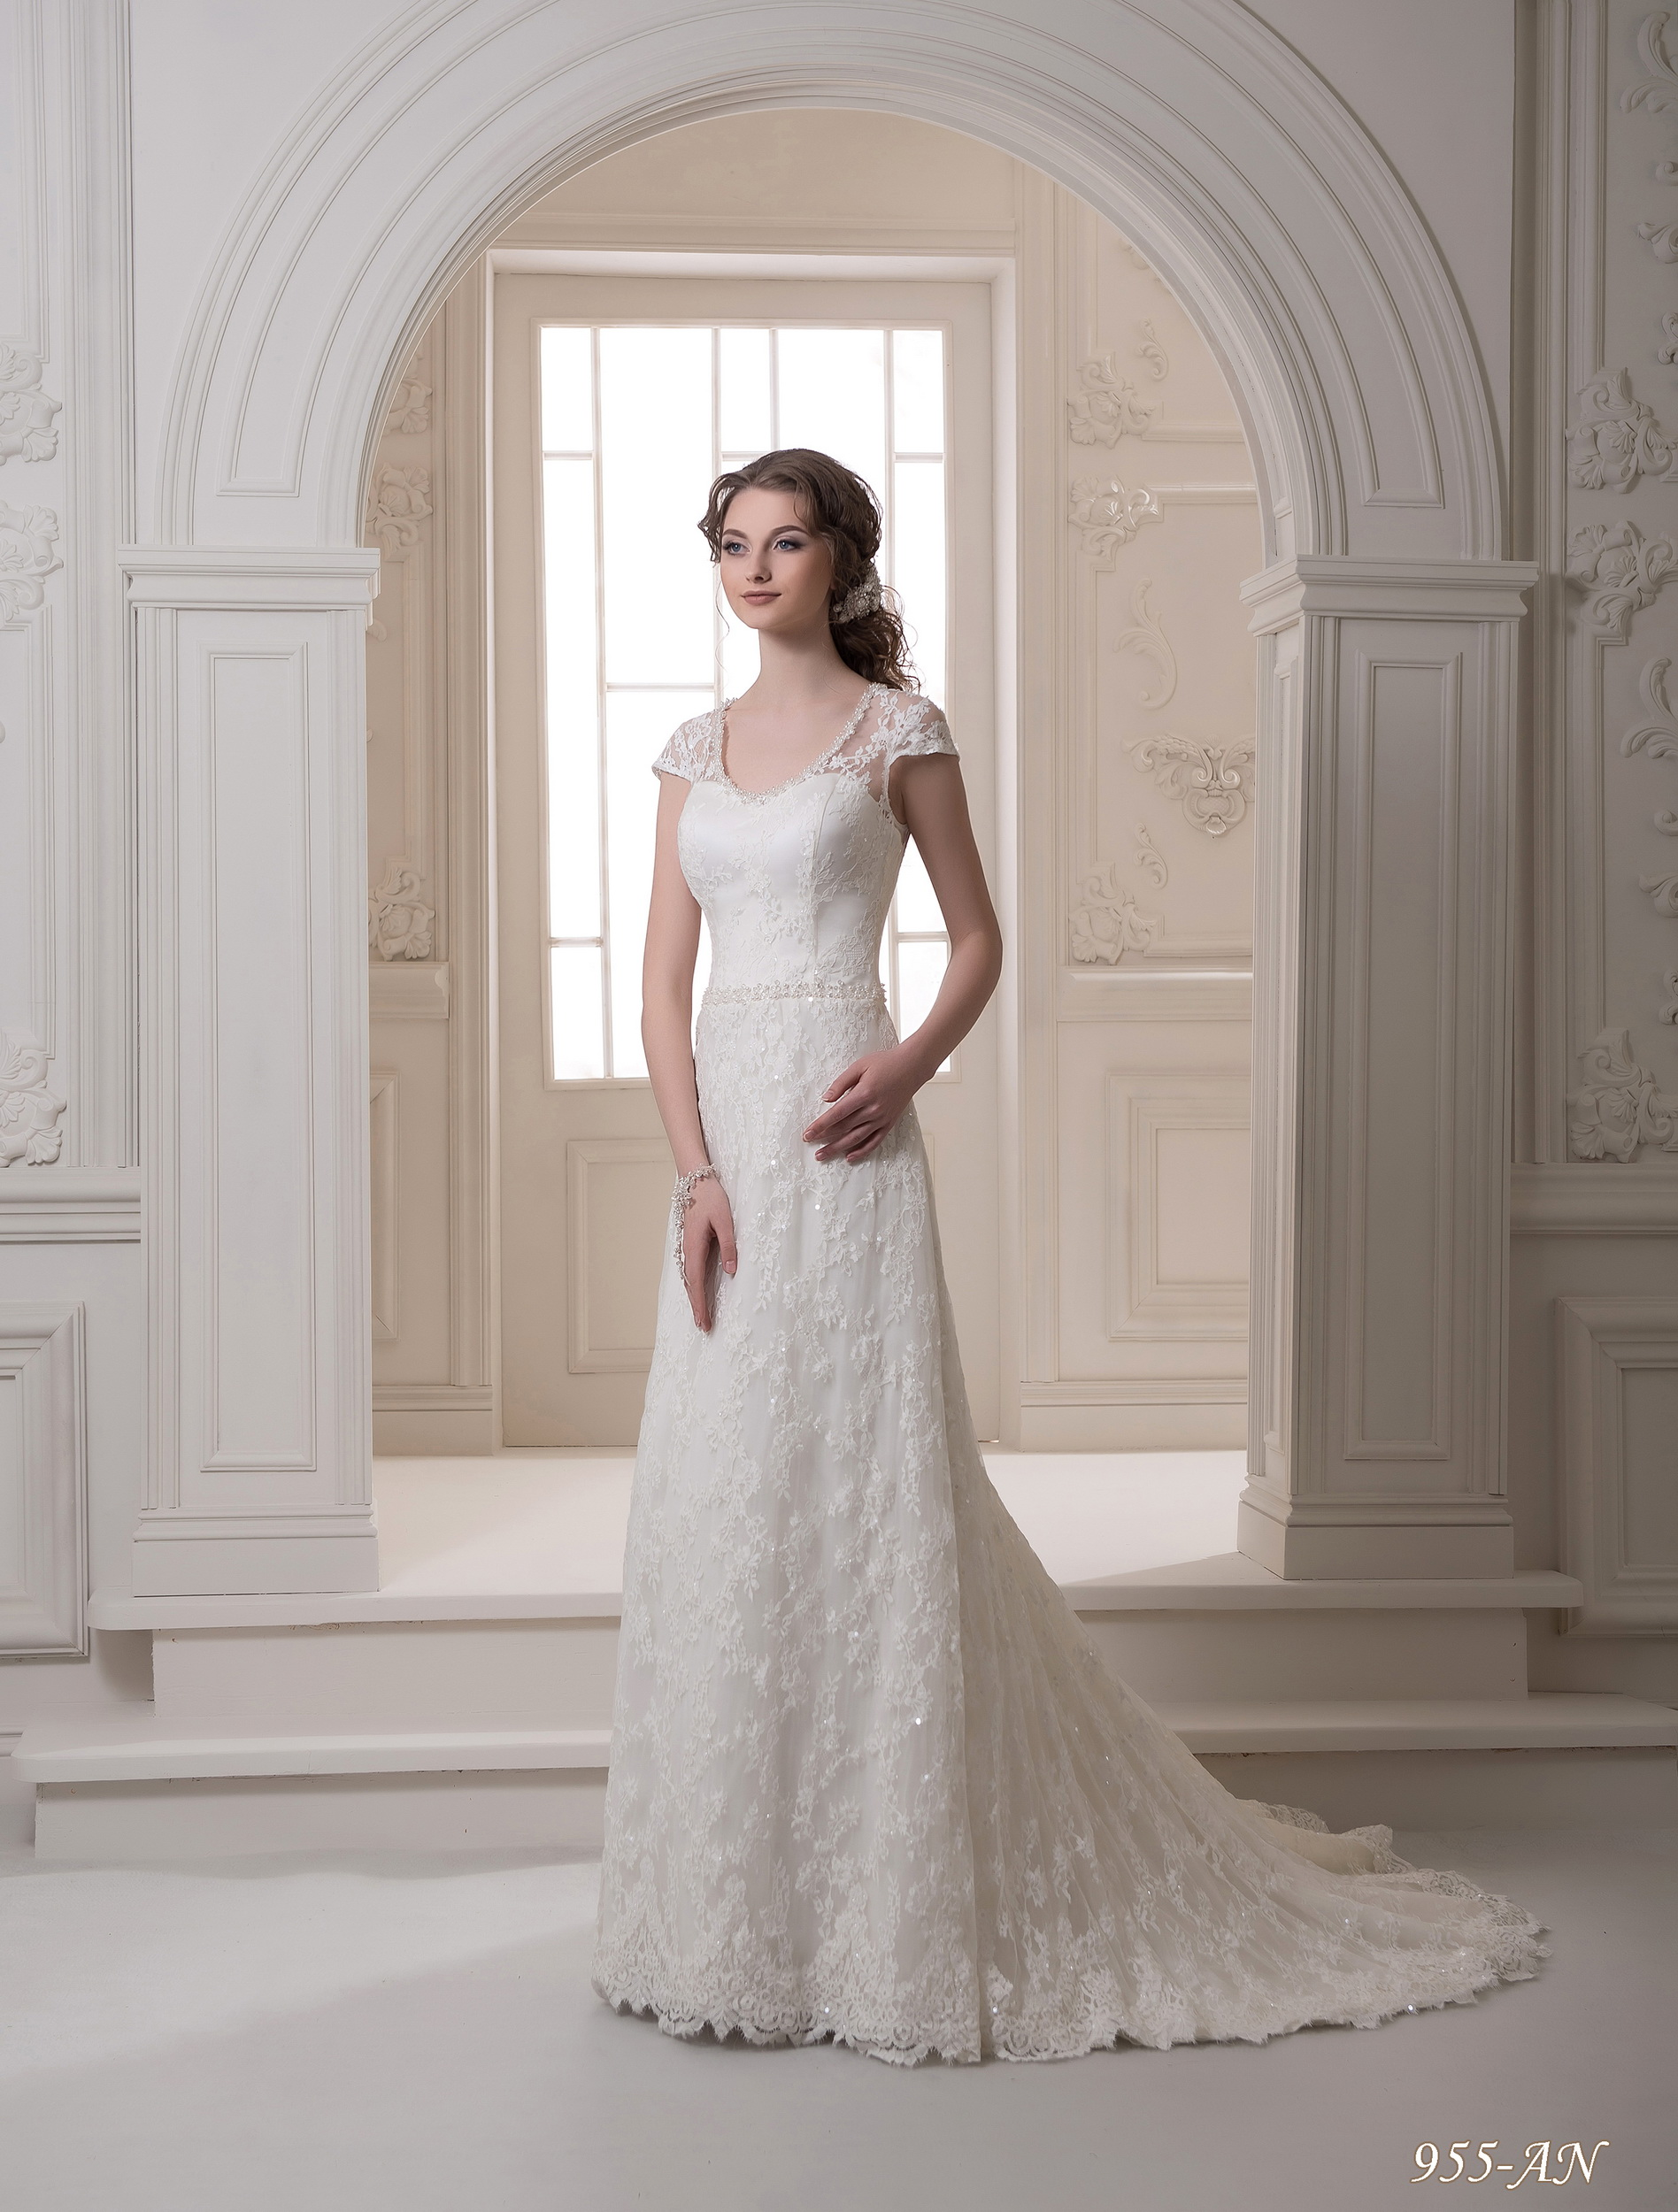 955-AN | Buy wedding dresses wholesale from Pentelei